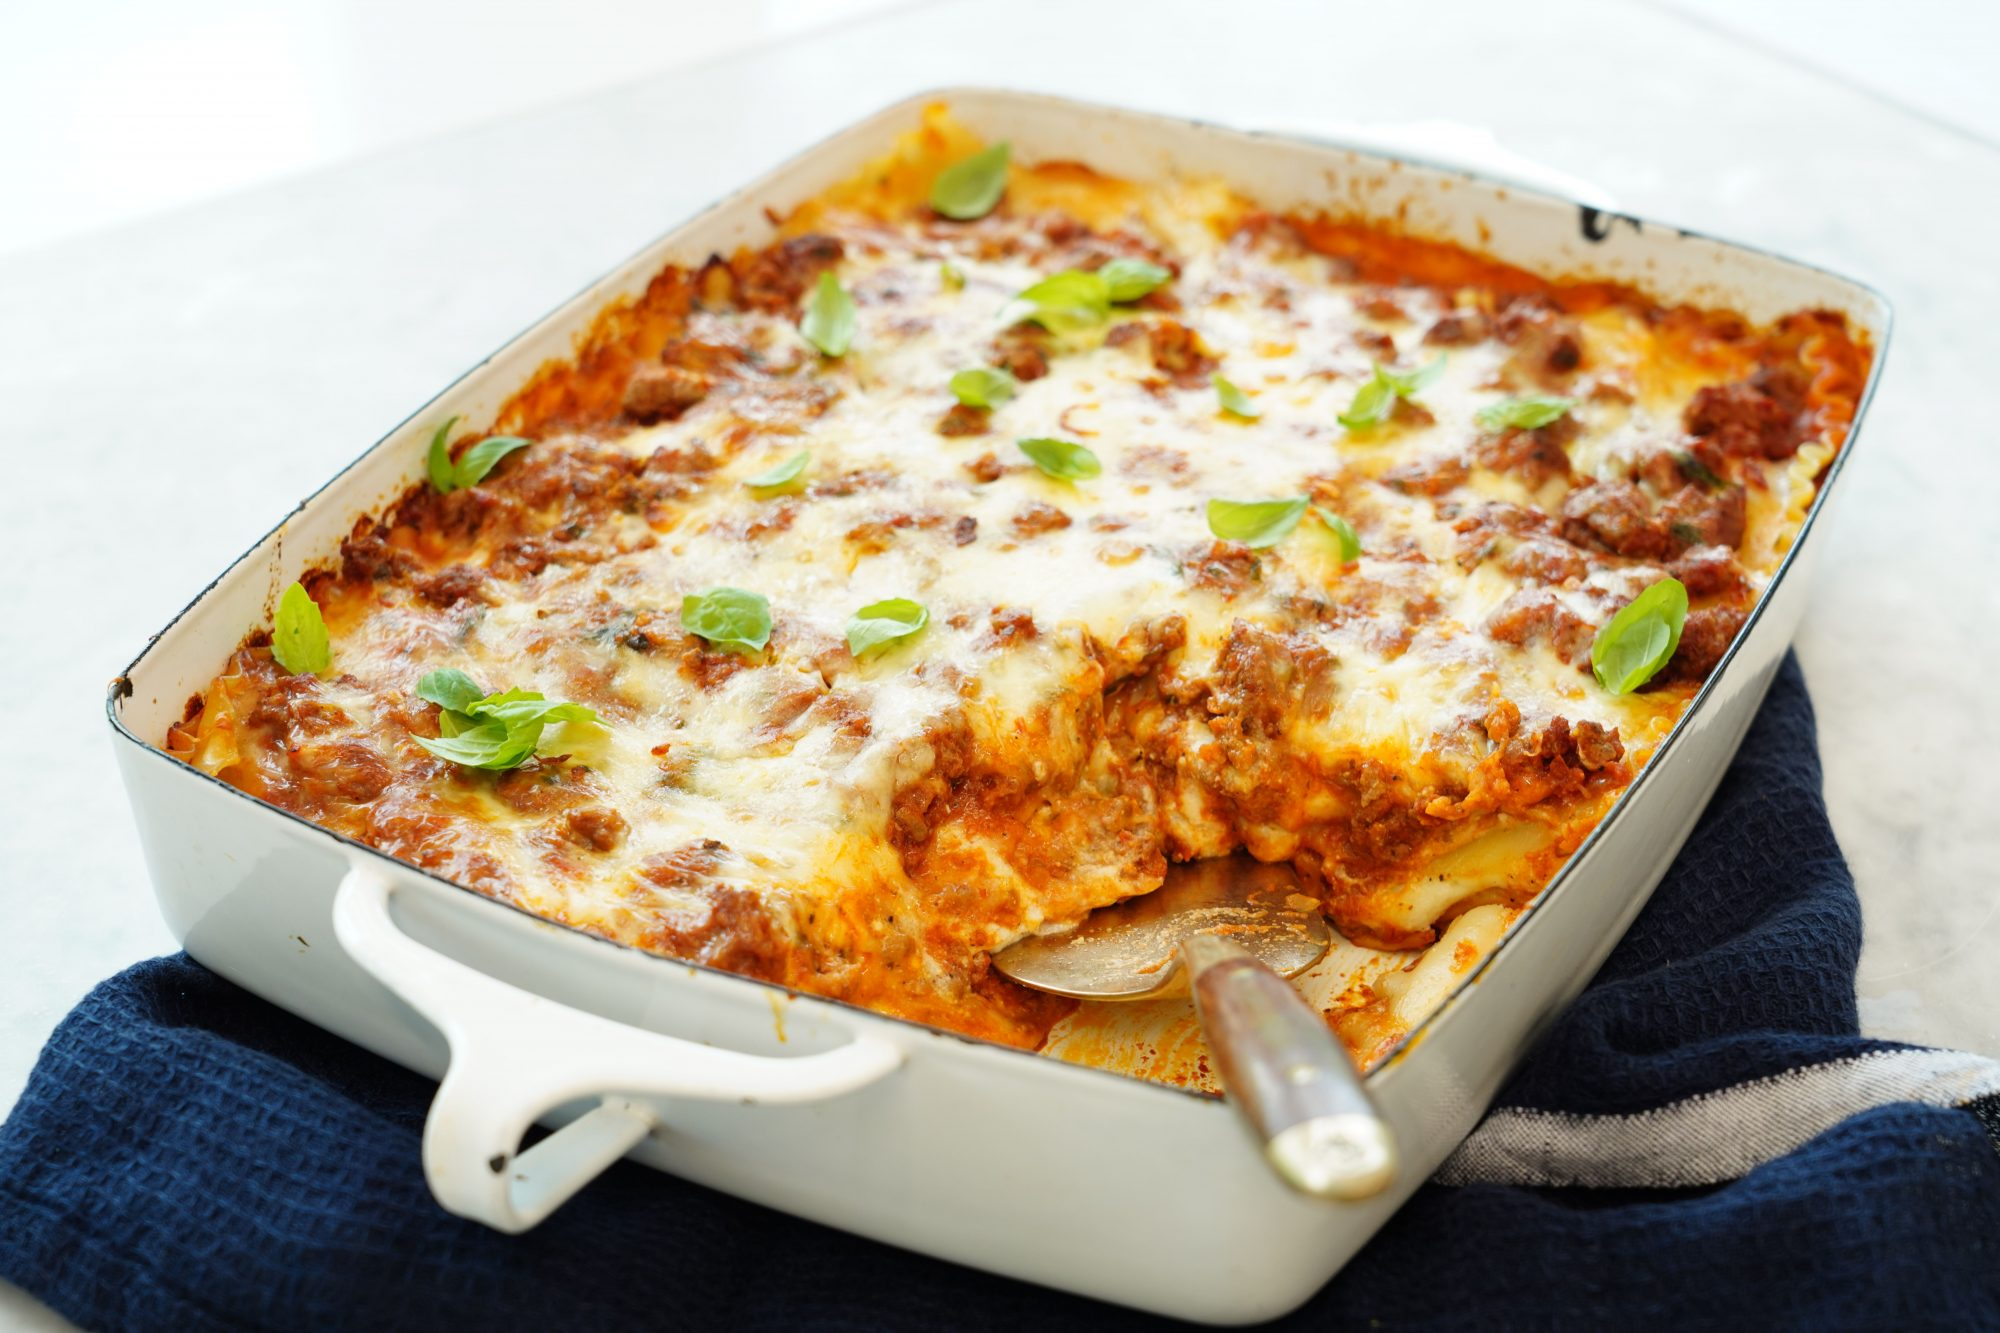 homemade baked lasagna with ricotta bechamel sauce in a casserole dish